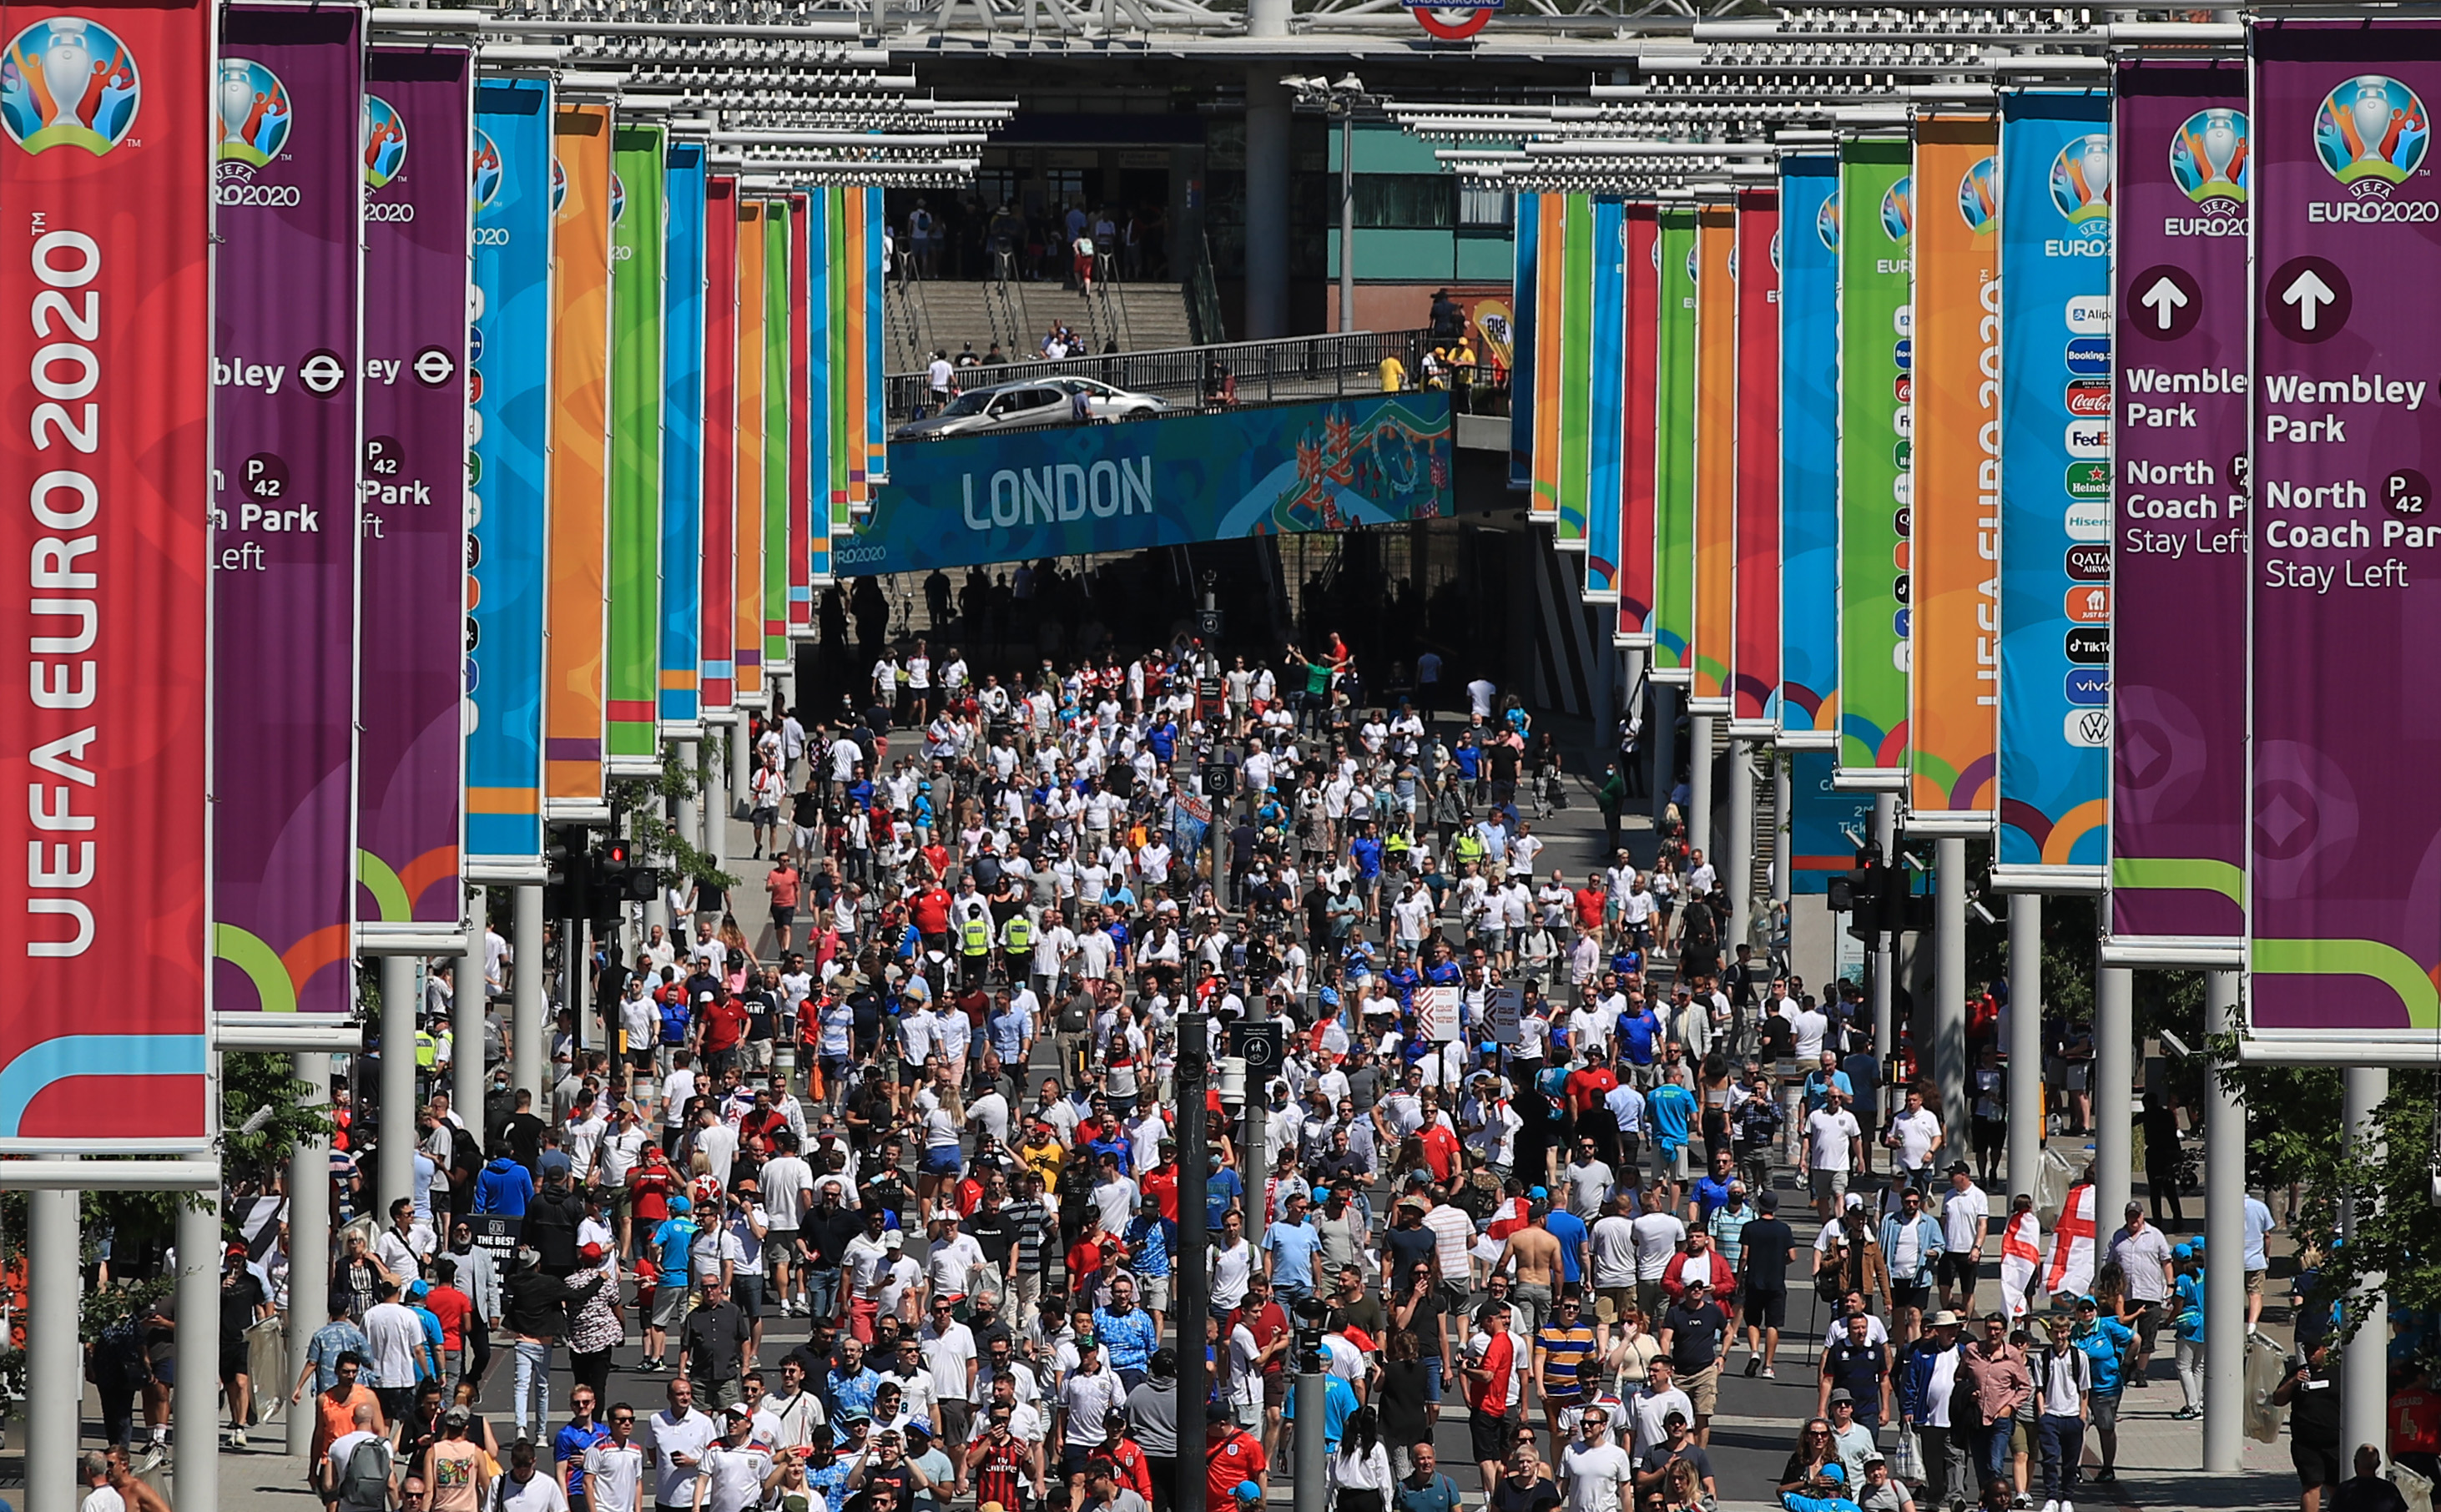 <p>LONDON, ENGLAND - JUNE 13:  A general view of Wembley Way and fans prior to the UEFA Euro 2020 Championship Group D match between England and Croatia on June 13, 2021 in London, United Kingdom. (Photo by Marc Atkins/Getty Images)</p>